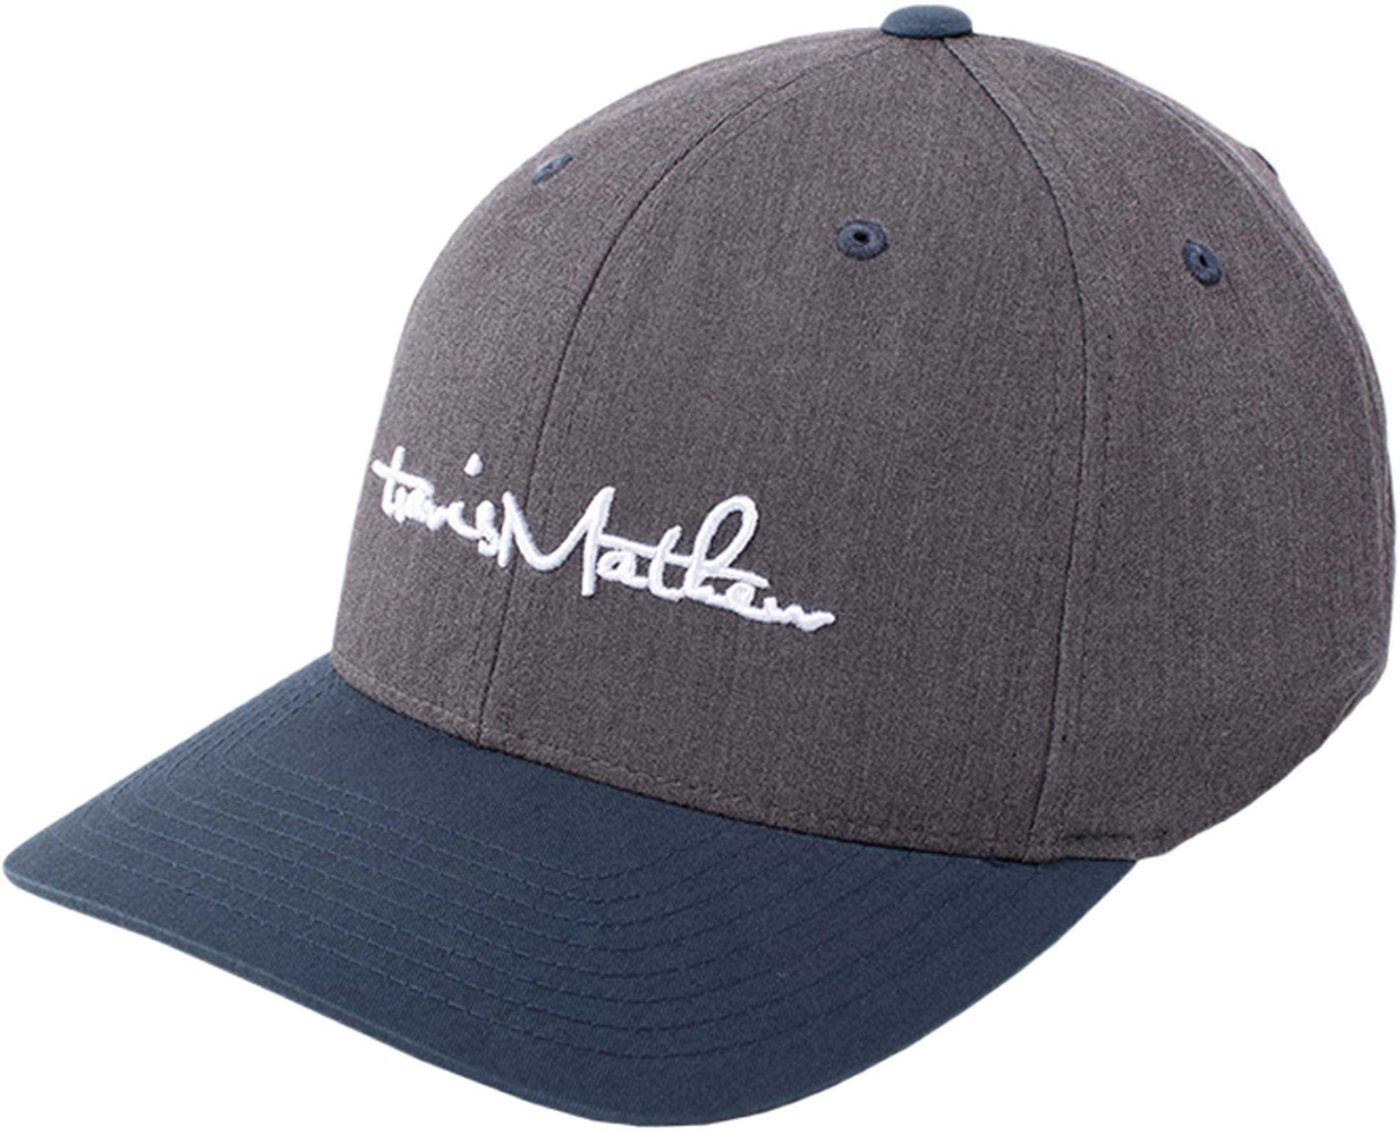 TravisMathew Men's Toles Ya Golf Hat